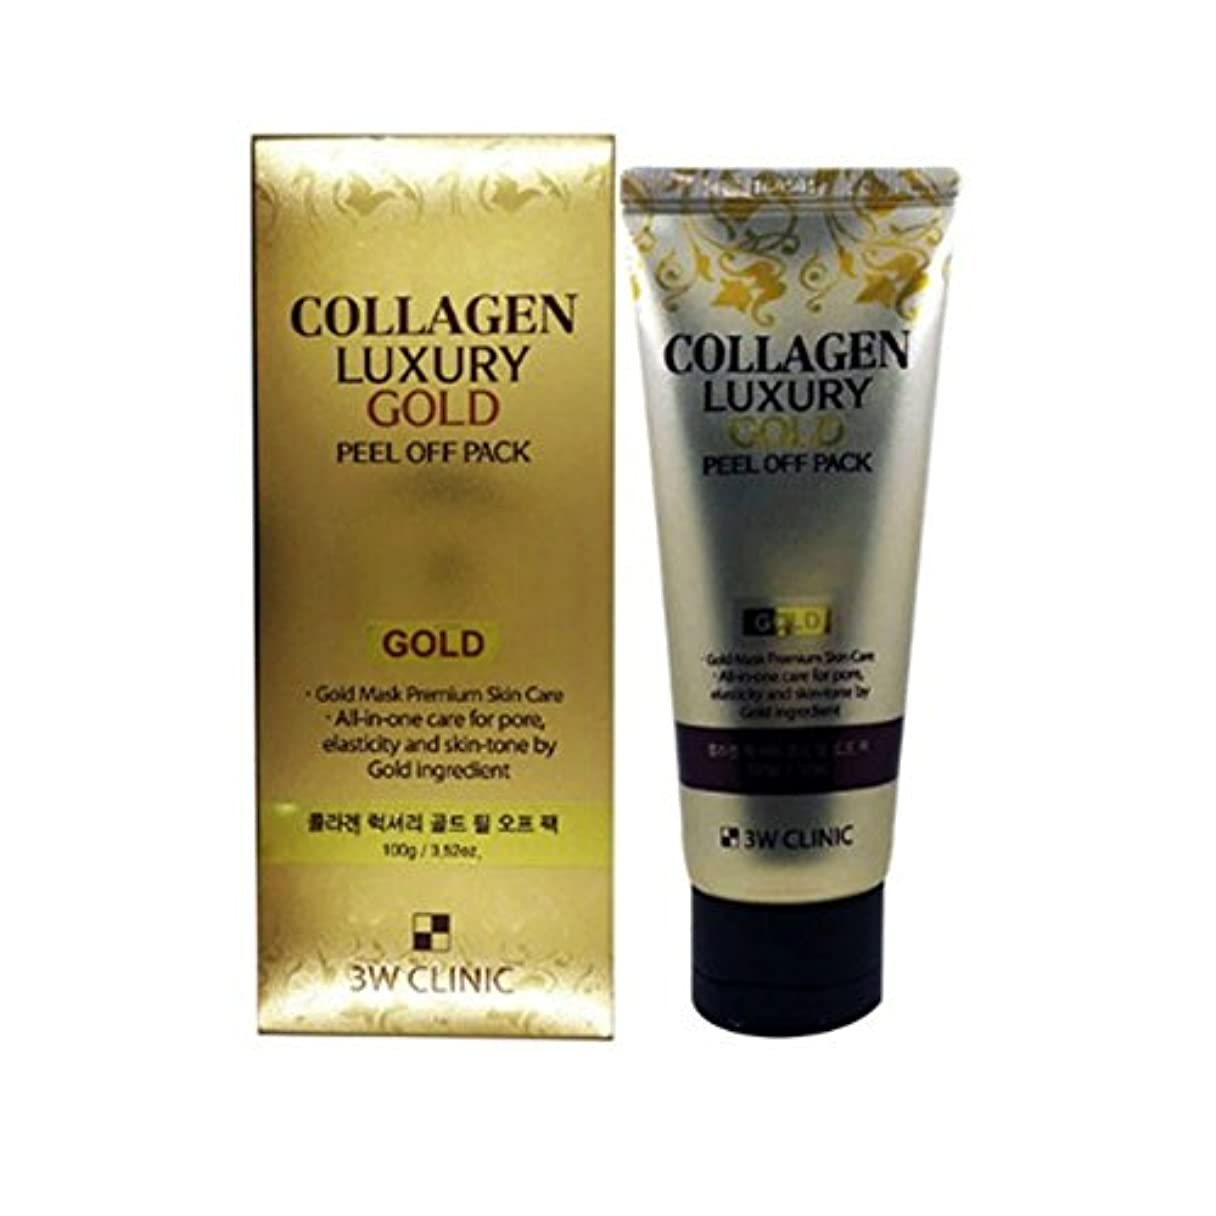 スクラッチ石化する寺院【韓国 3W CLINIC】COLLAGEN LUXURY GOLD PEEL OFF PACK 100g